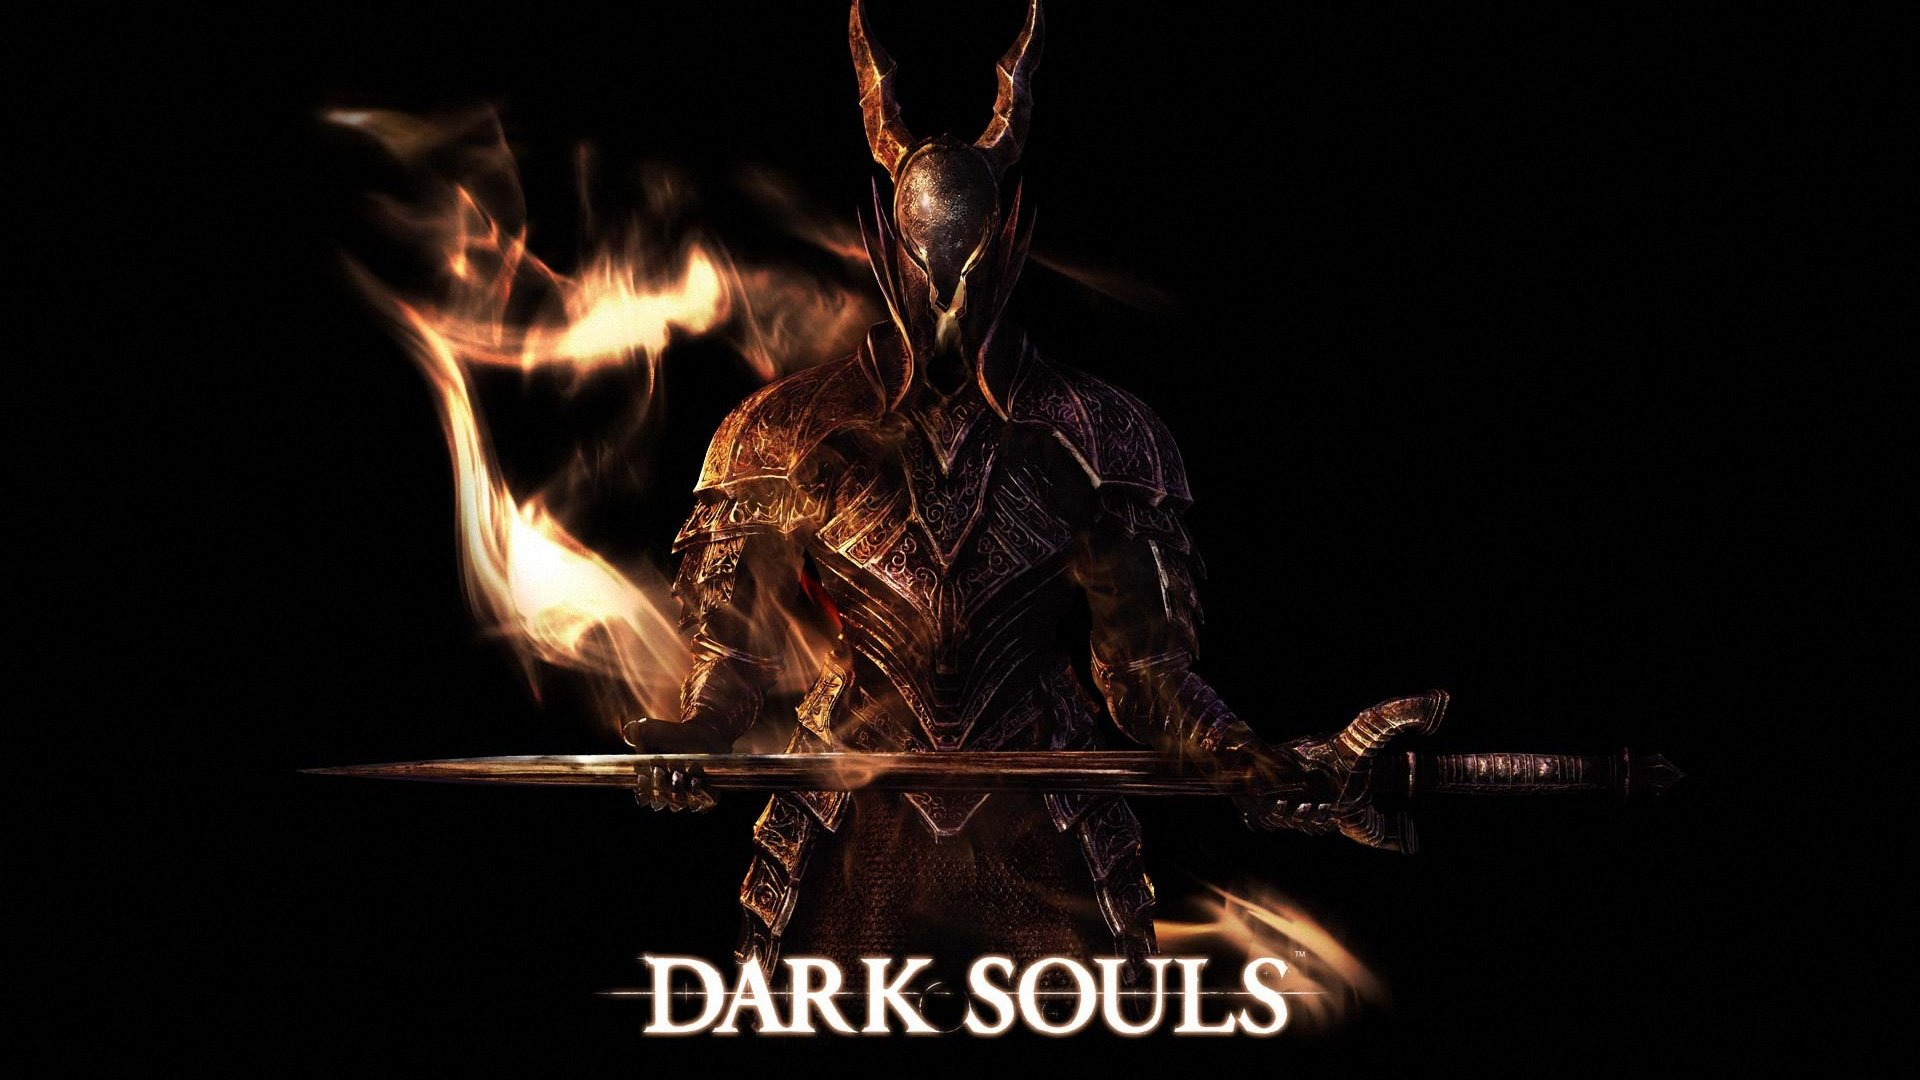 dark souls lodran wallpaper - photo #9